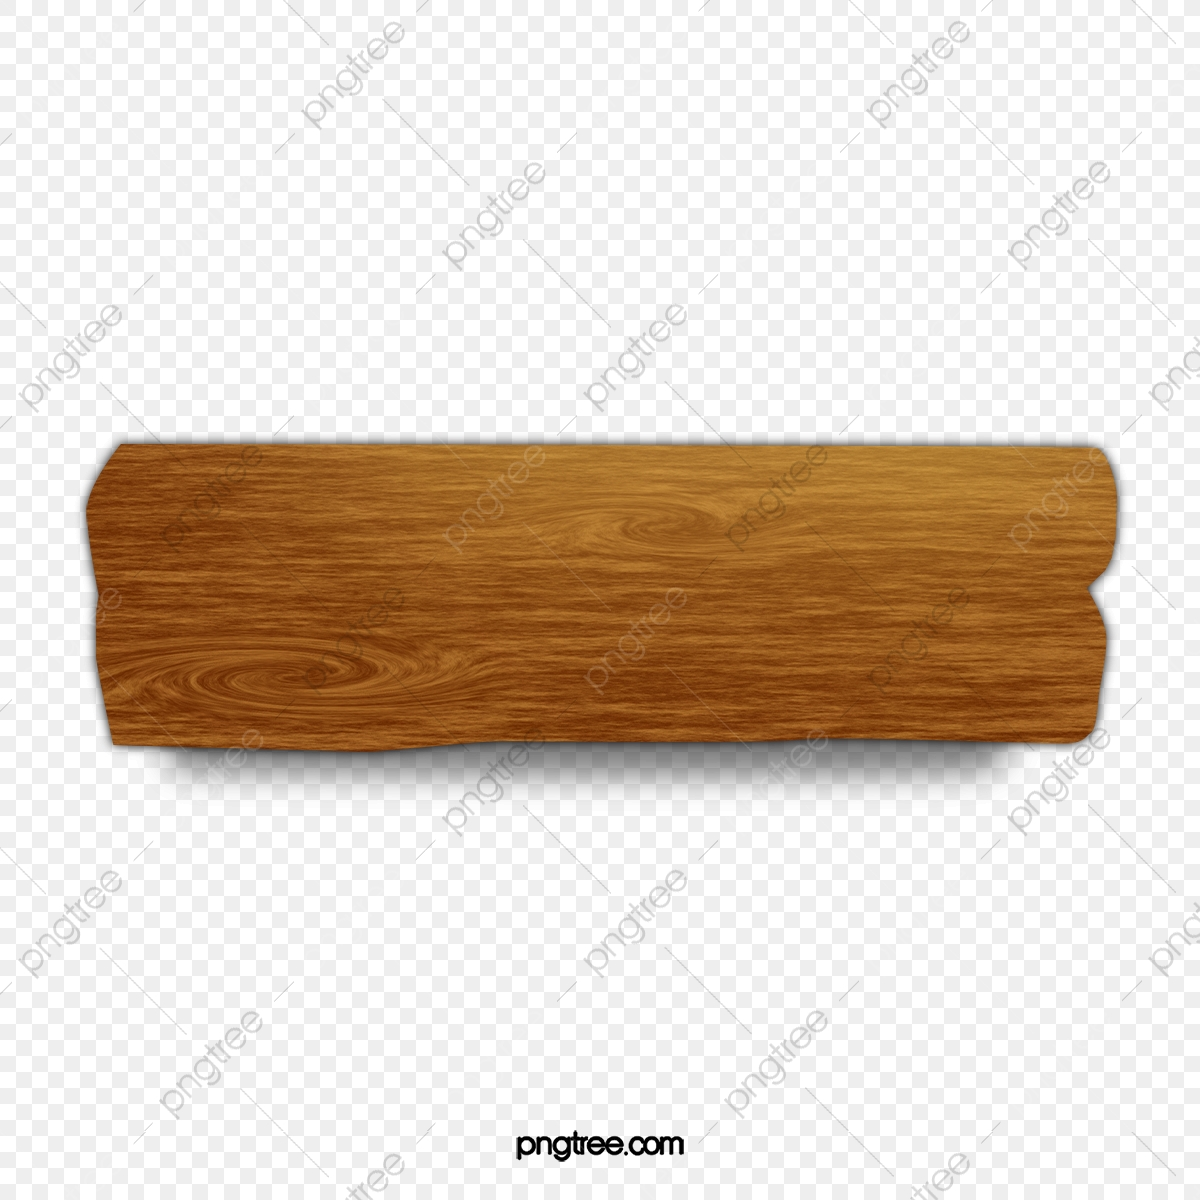 hight resolution of commercial use resource upgrade to premium plan and get license authorization upgradenow wood grain